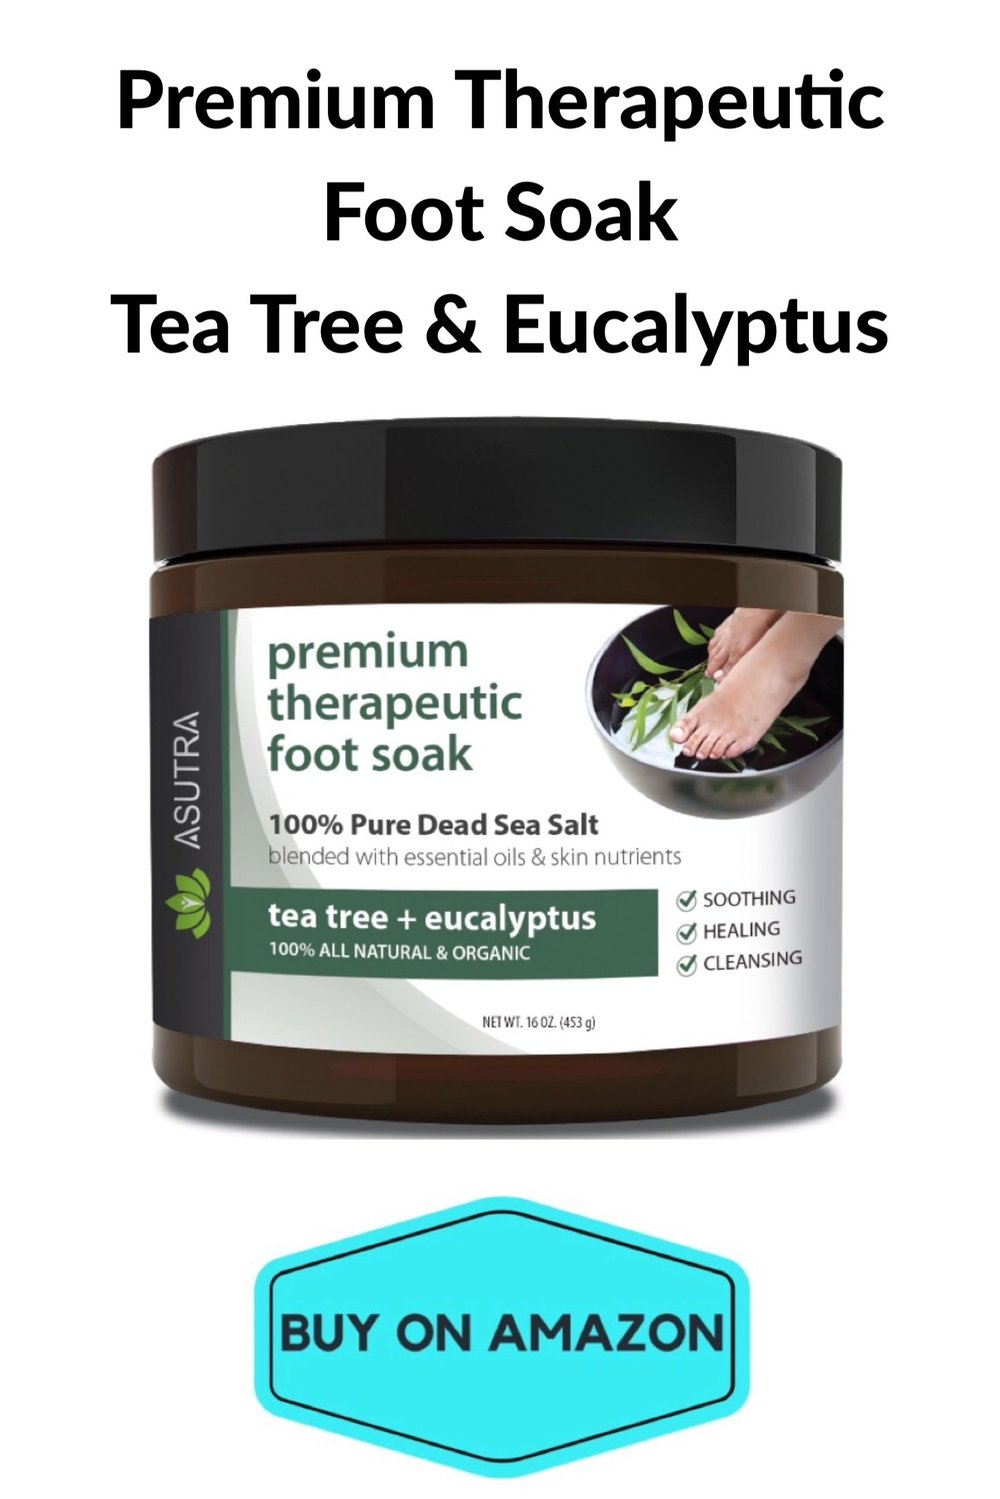 Therapeutic Foot Soak, Tea Tree & Eucalyptus